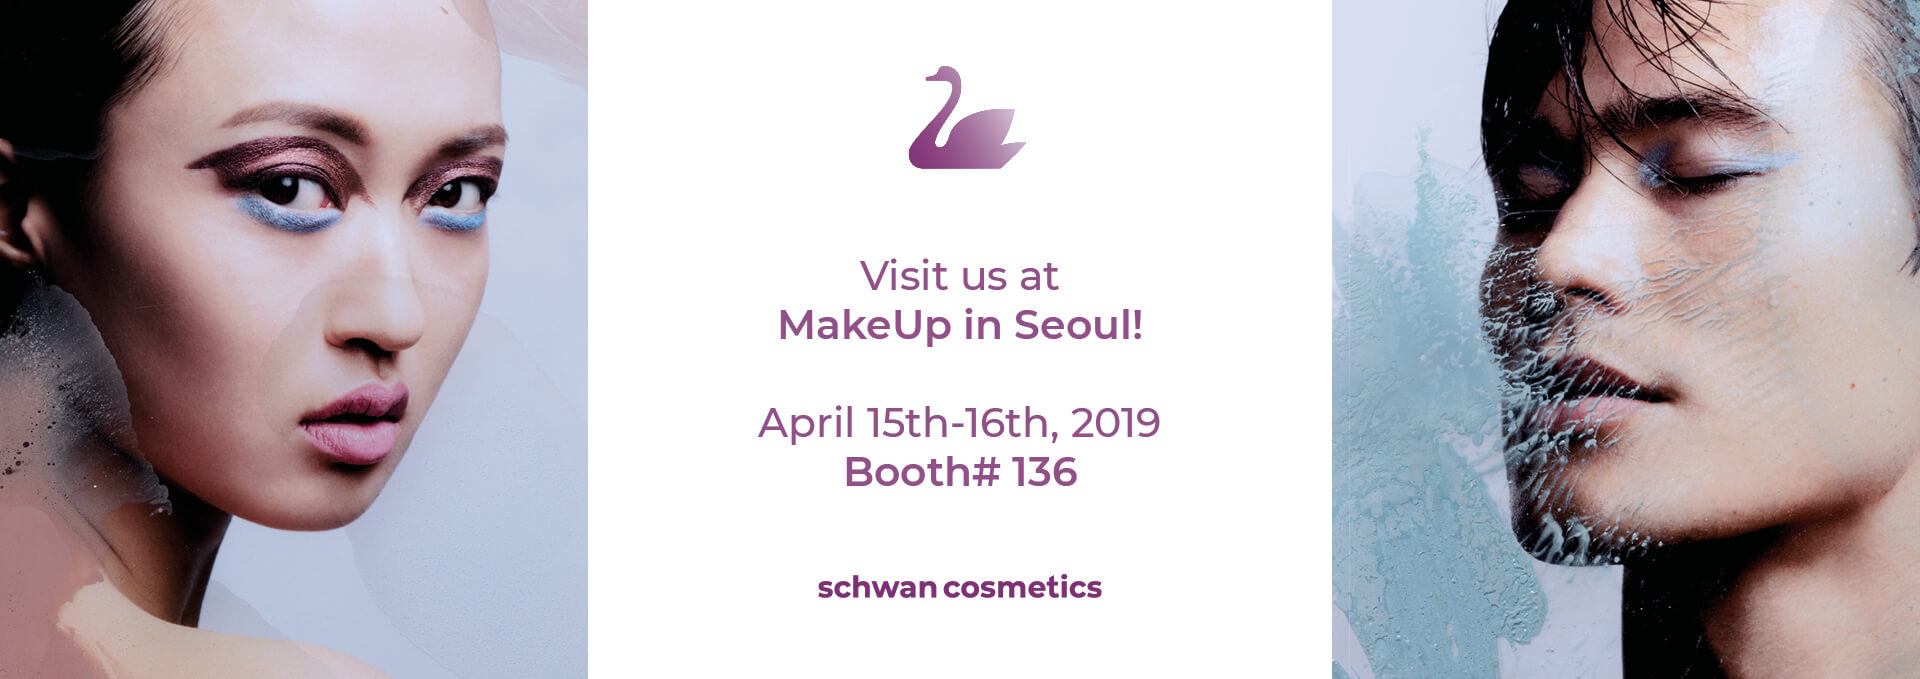 schwan-cosmetics-news-makeup-in-seoul-april-2019